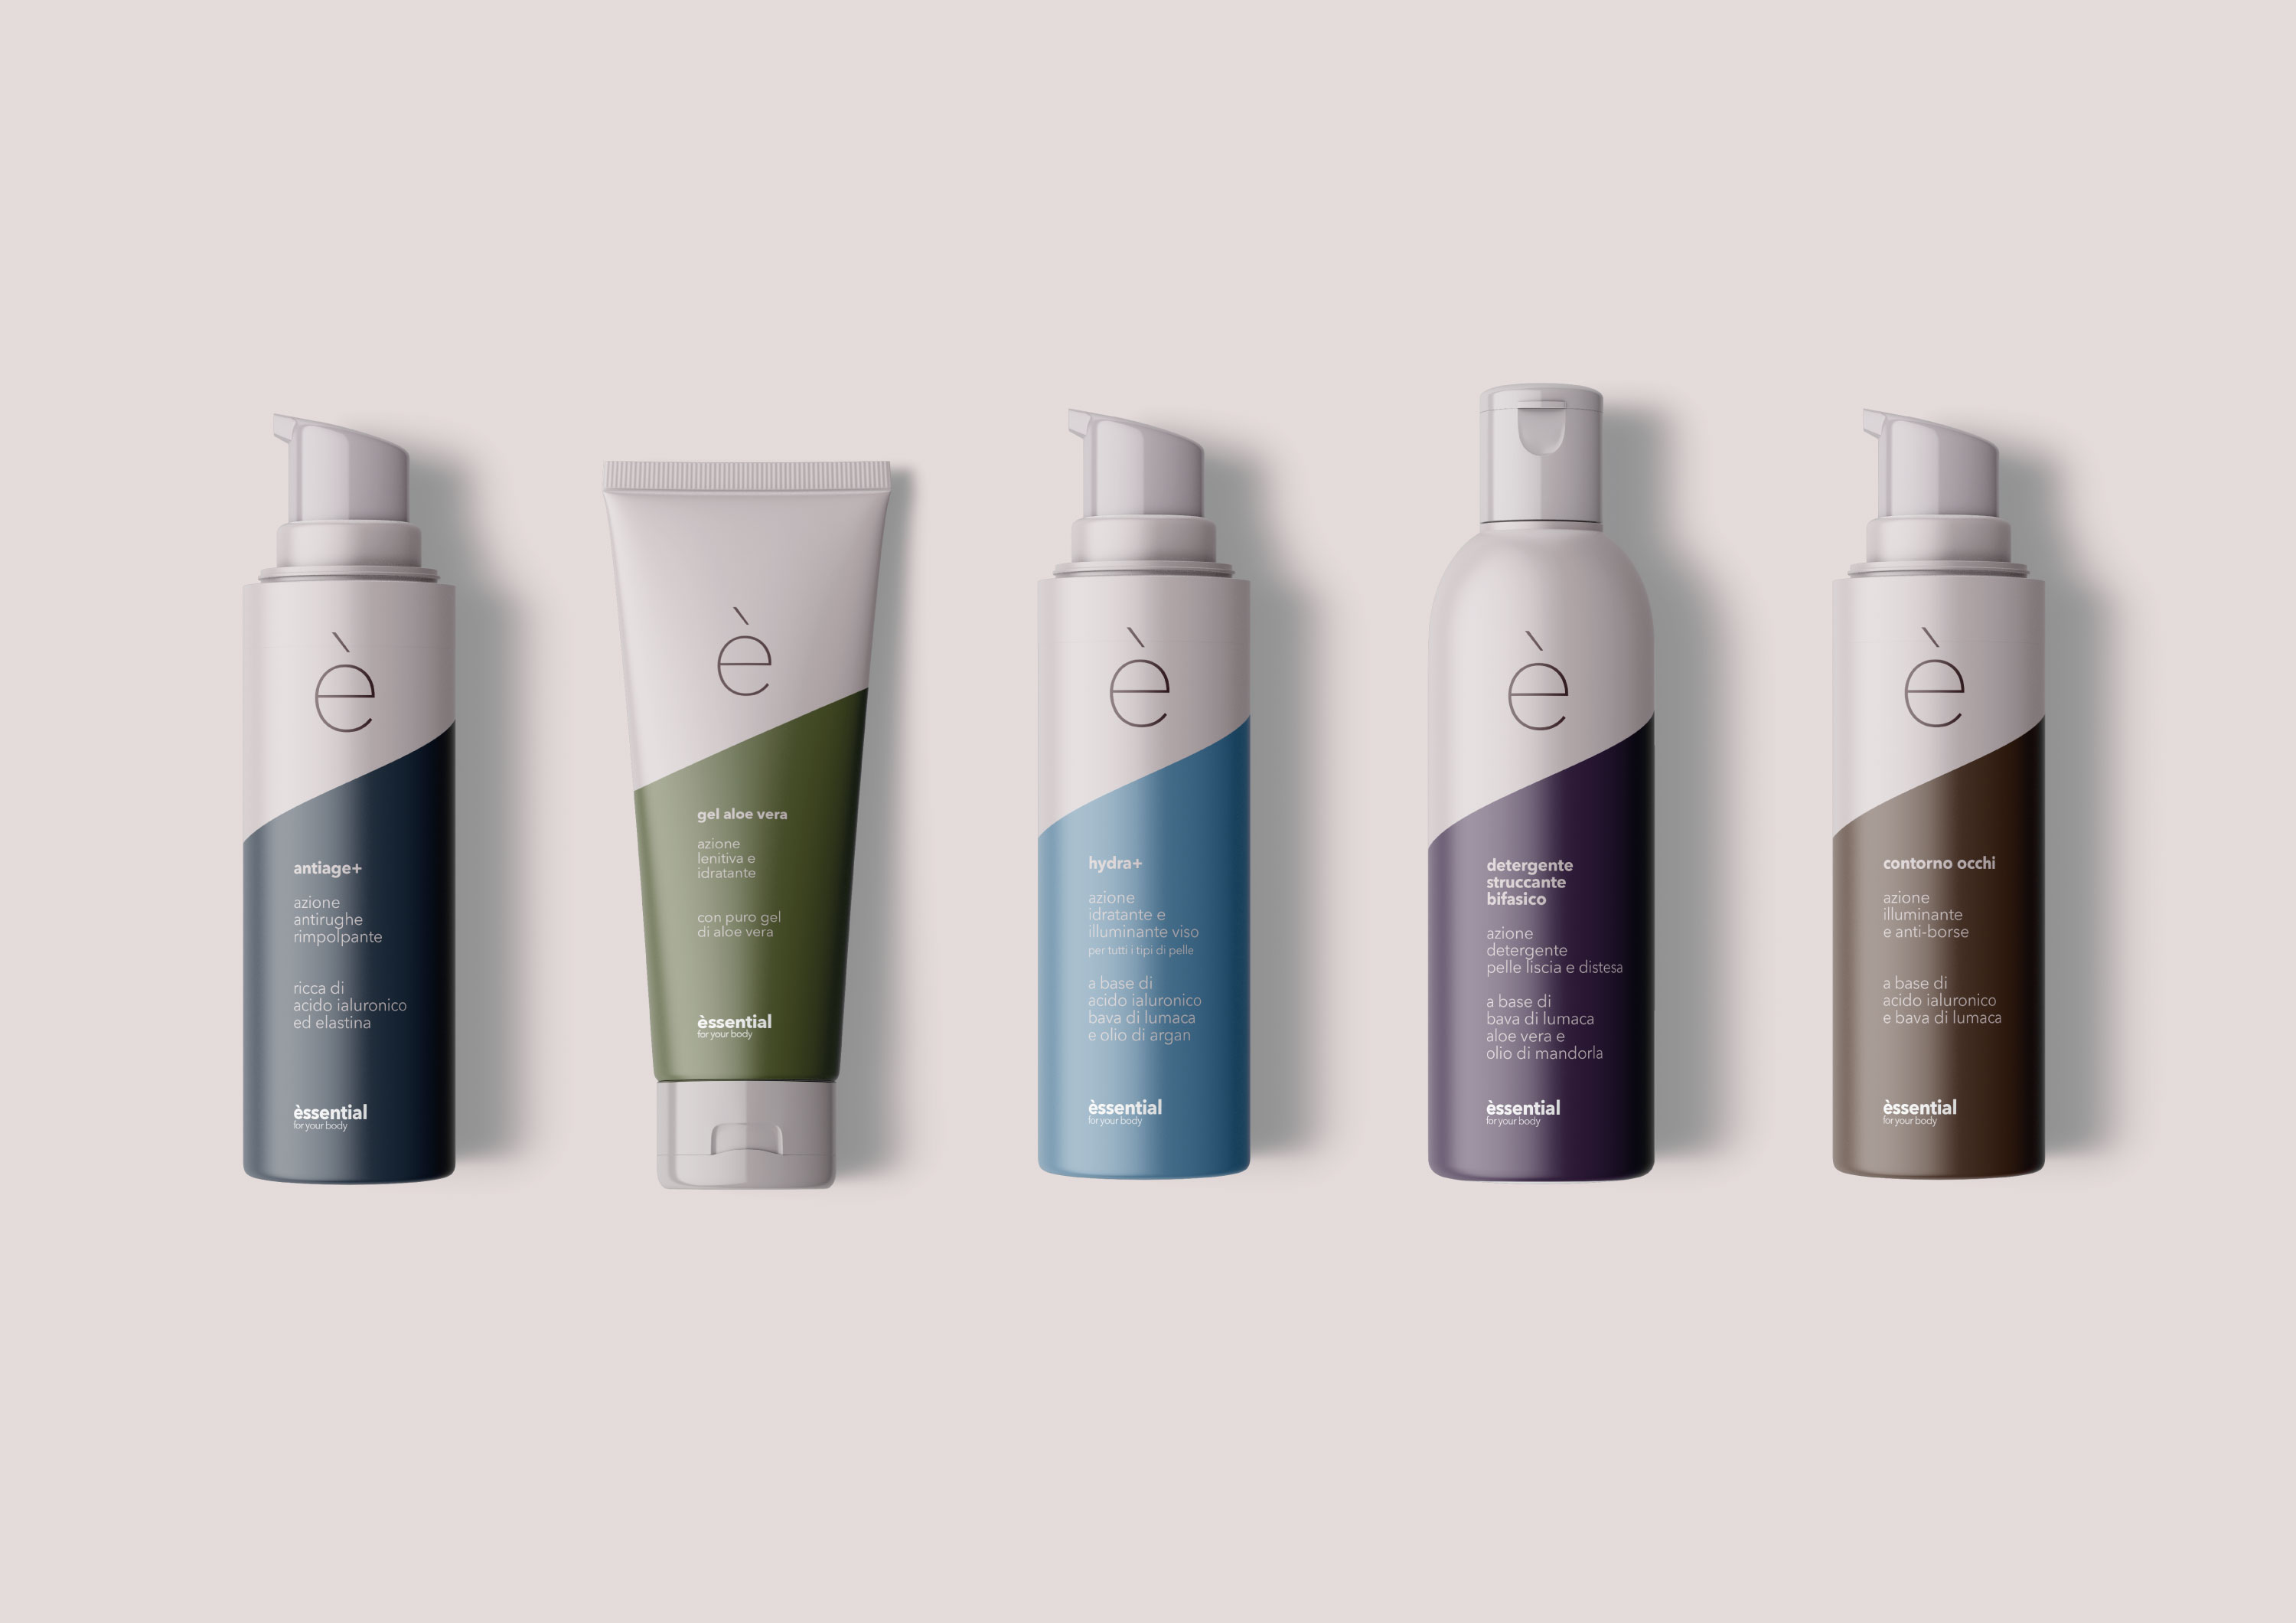 Packaging Design for Èssential, for your body by Veesion